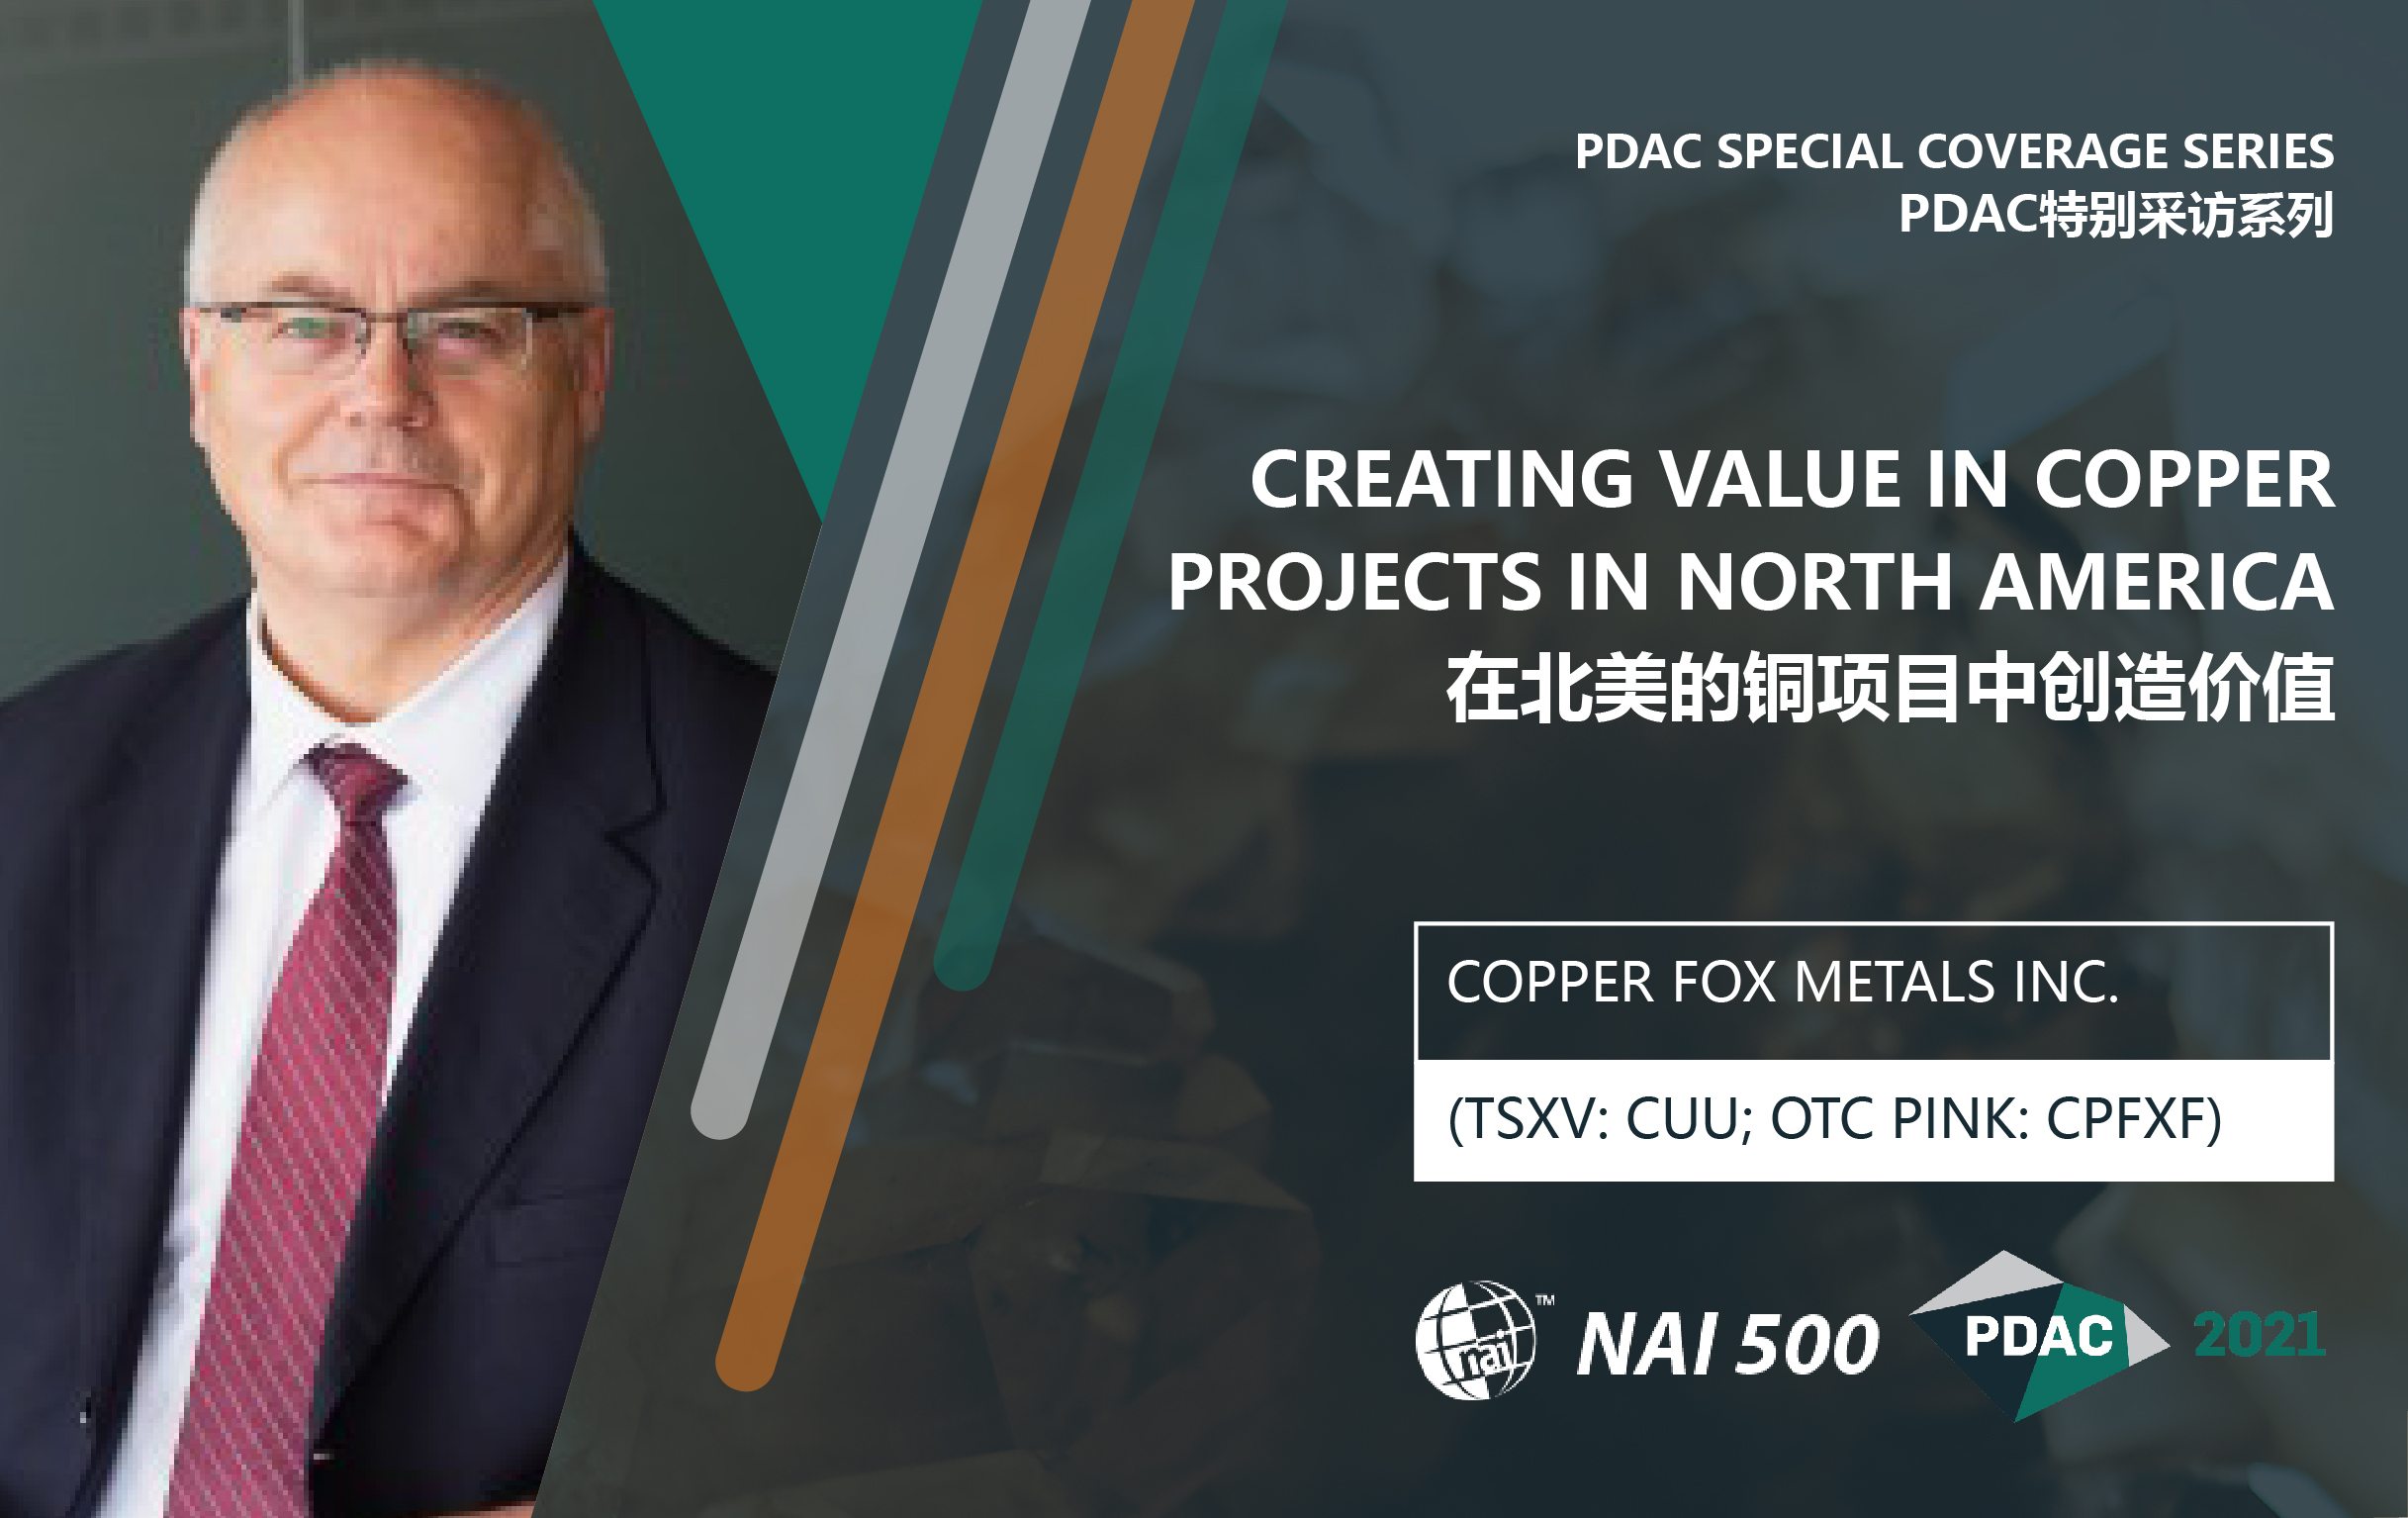 Creating Value in Copper Projects in North America – Copper Fox Metals Inc. (TSXV: CUU) | PDAC 2021 Special Coverage